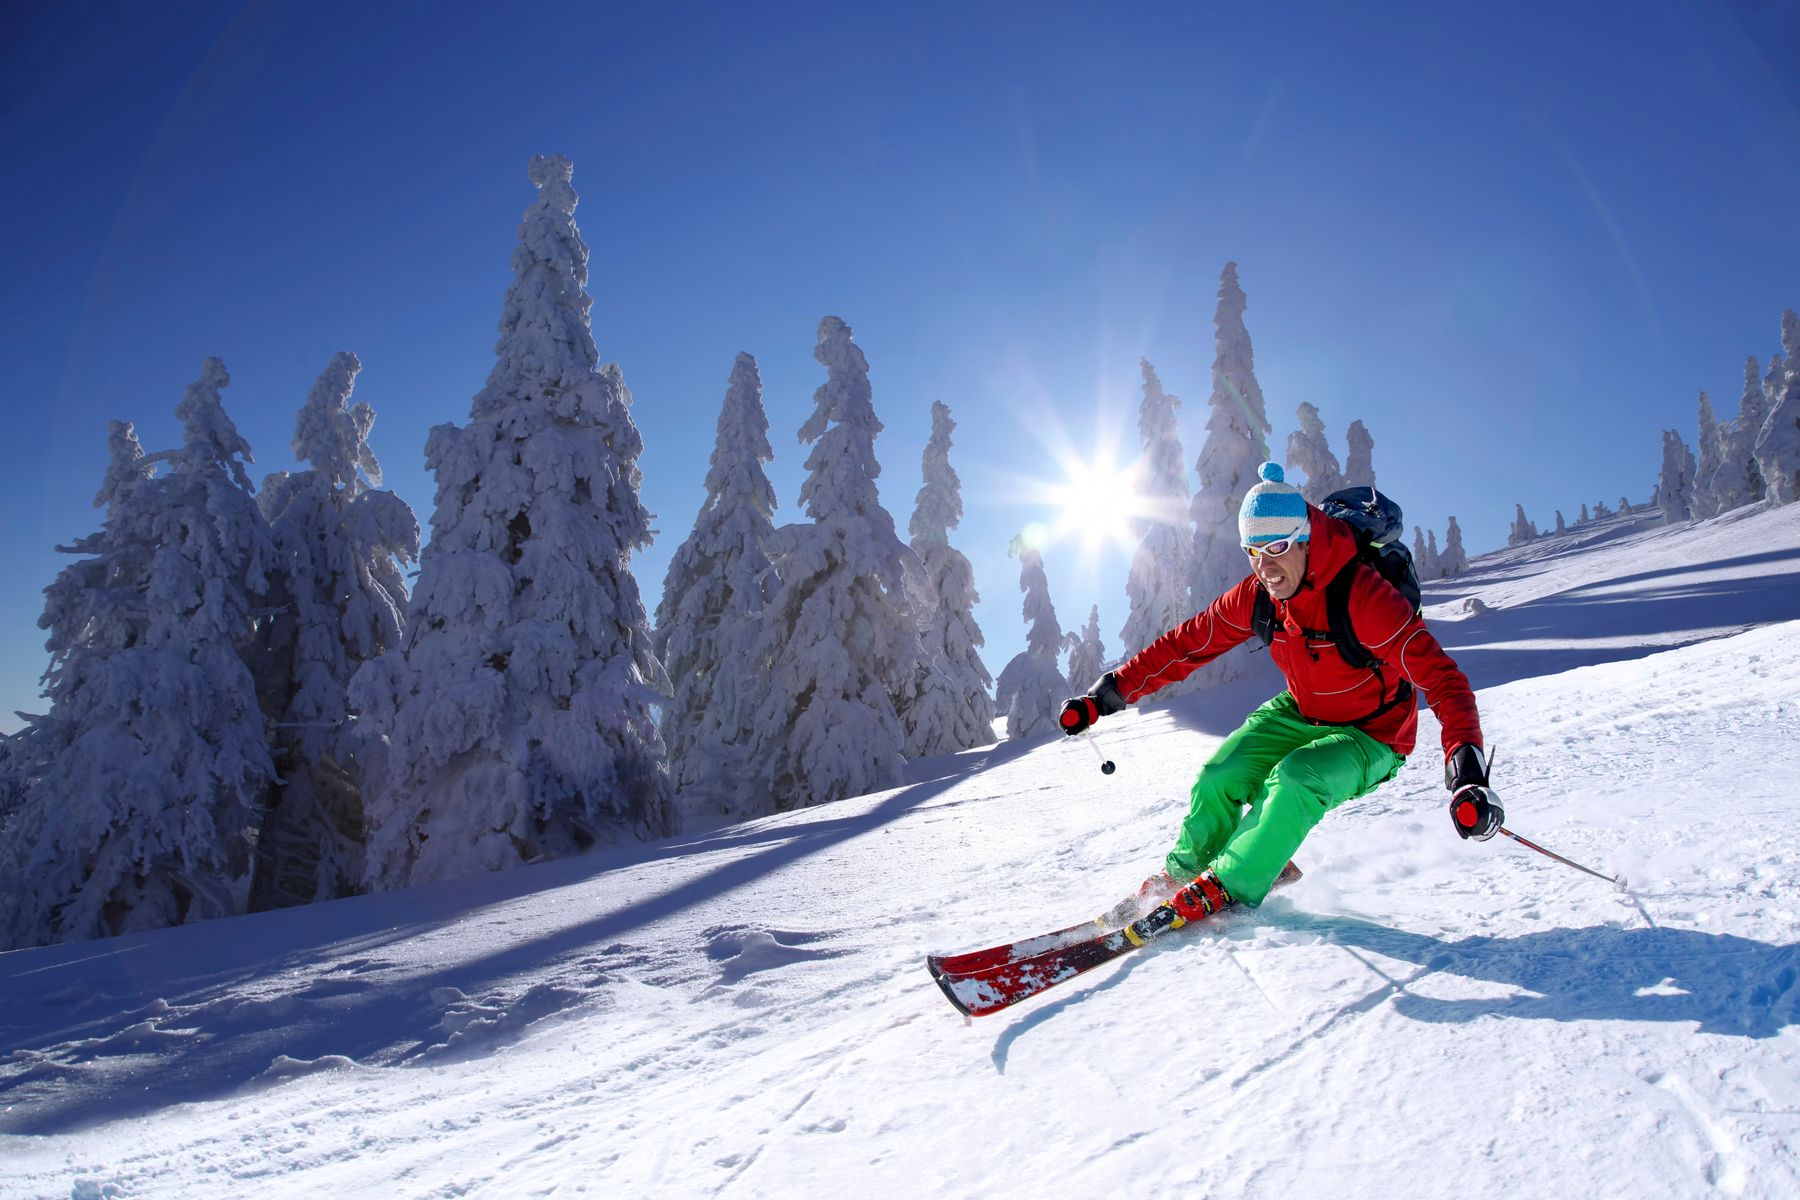 A skier smiles as they hug a curve downhill on a sunny day. Evergreens blanketed in snow form the backdrop.